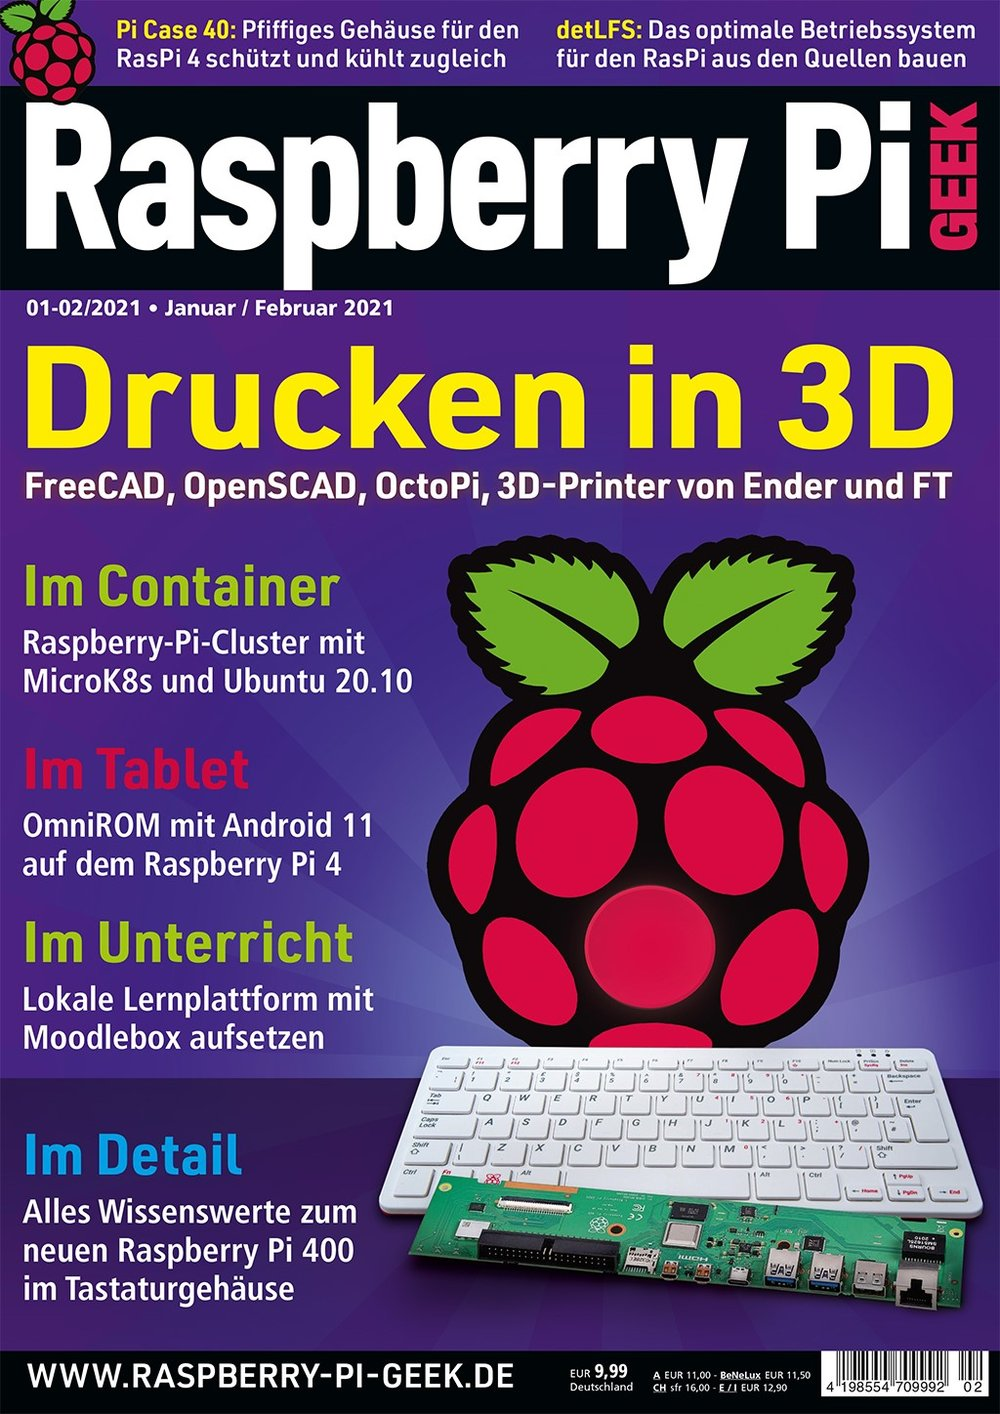 Raspberry Pi Geek 02/2021